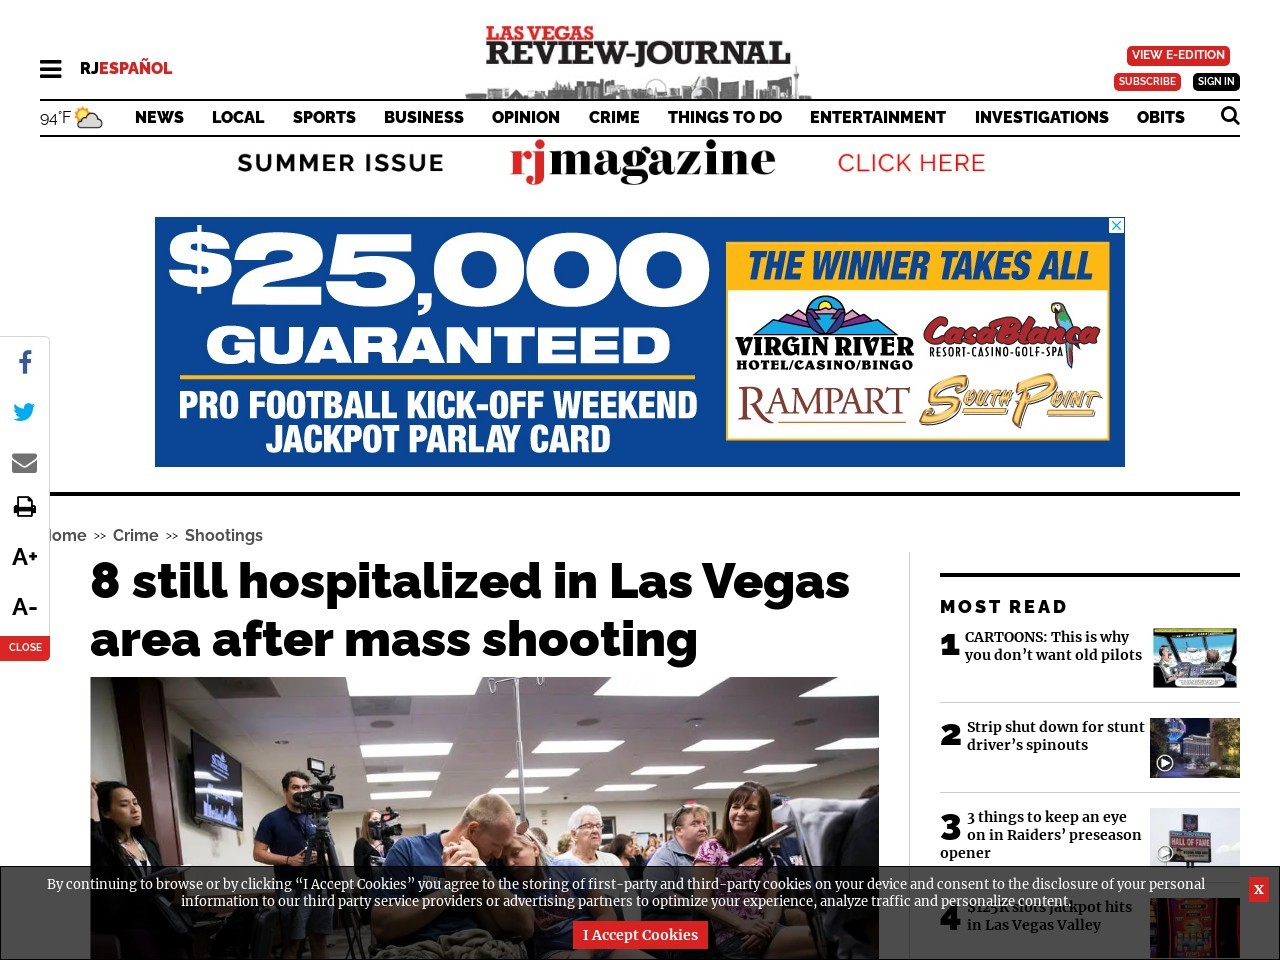 8 still hospitalized in Las Vegas area after mass shooting